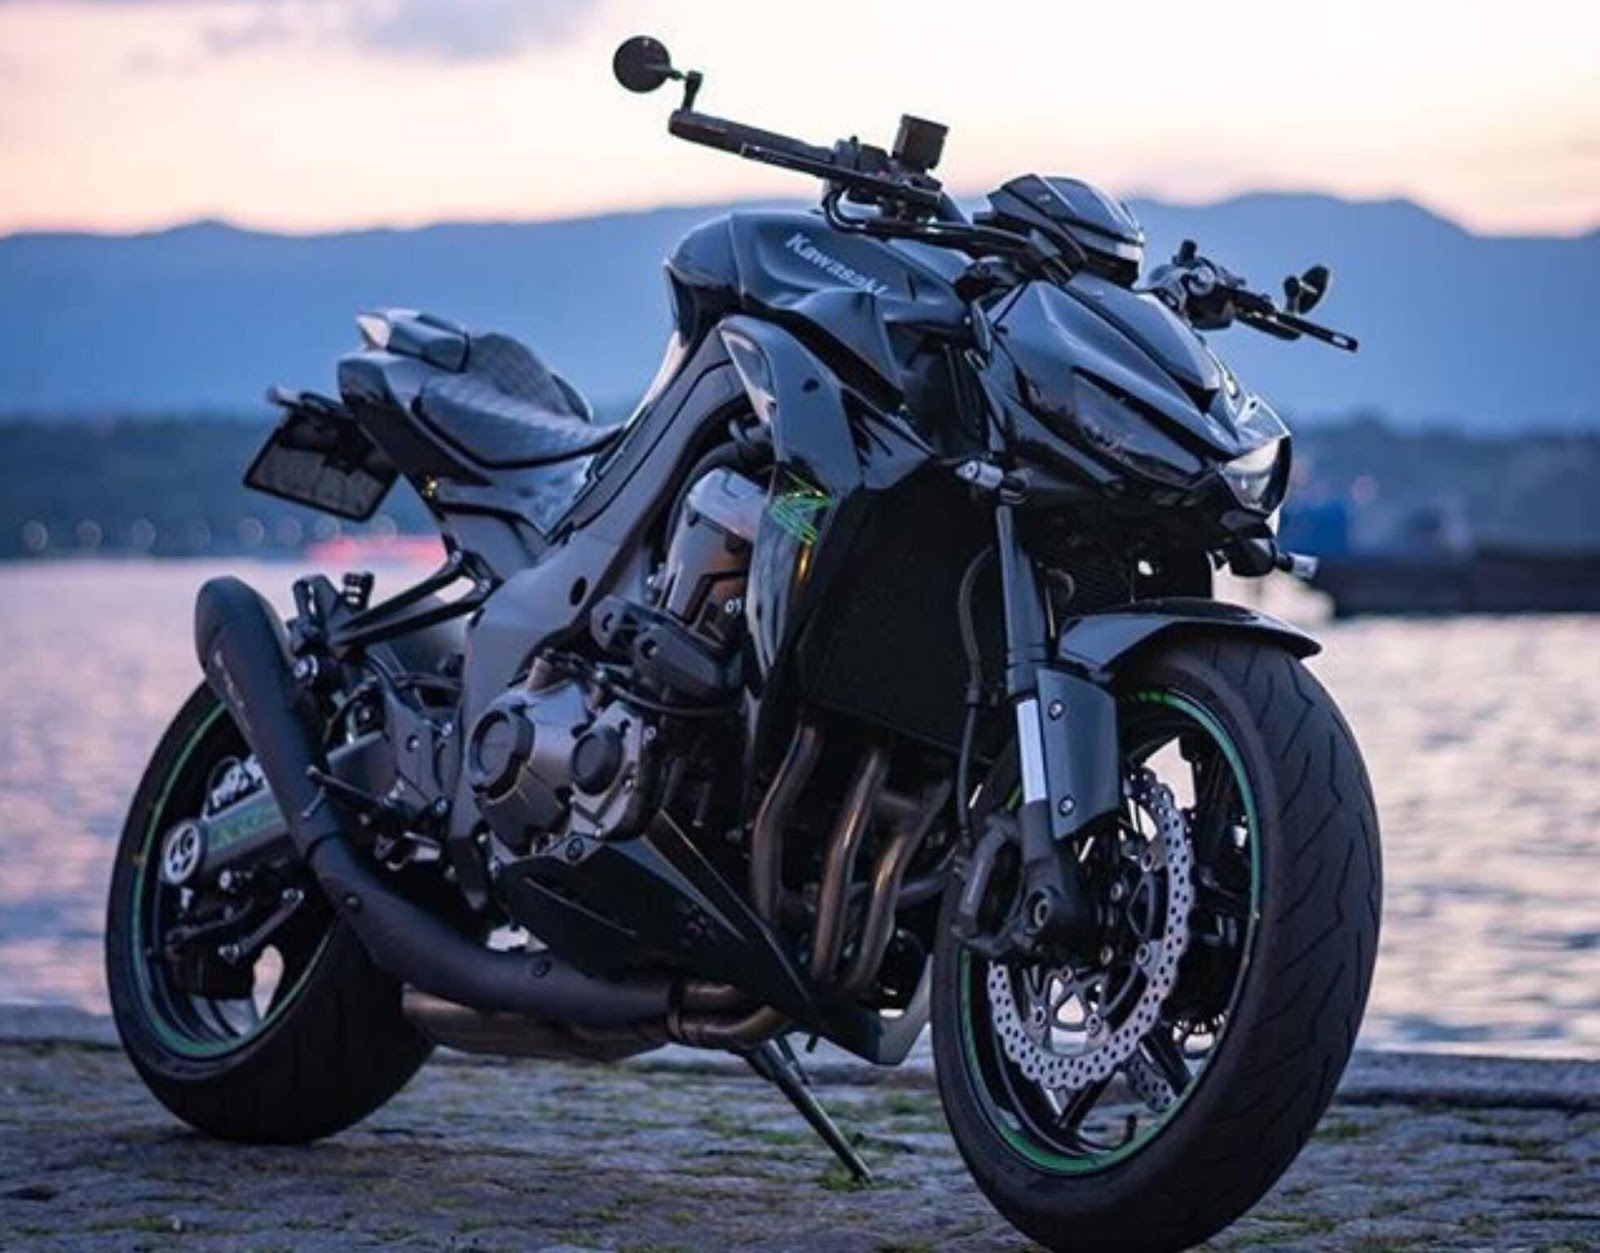 Kawasaki Z1000 2020 model bike has been finally launched. You might have dreamed of having such a classy bike with amazing features and now it's available in Pakistan. The bike is designed with a four-cylinder exclusive style that instantly grabs one's attention. Kawasaki Z1000 2020 was first introduced as a successor to the early-1970s and Z900 machines. However, the company redesigned it later for 2020. Along with its standard style, an updated version came up in a slightly larger capacity engine. Here we have got further details! Kawasaki Z1000 2020 - Specs and Price! Taking a look at the features and specs of this bike, Kawasaki Z1000 comes with 4-stroke, liquid-cooled, DOHC, four valves per cylinder, inline-four engine. The bike has its displacement as 1043cc. The new design makes front suspension adjustments easier, even while you're out on a ride. Stepless compression and rebound damping are adjusted on one fork leg, and spring preload is adjusted on the other. The rear suspension is handled by a horizontal back-link rear shock, which is adjustable for rebound damping and preload and is located away from the possibly performance-degrading exhaust heat. Now you can have this best version of Kawasaki Z1000 2020 bike at the reasonable price that can make your dream come true. The price of this bike in Pakistan is estimated to be at1,000,000-1,500,000 PKR and is available in used condition. More About Features, Specs of Kawasaki Z1000 2020 Here we have got some more of the information about the features and specs of the Kawasaki Z1000 2020 model: Engine Four-stroke, liquid-cooled, DOHC, Four valves per cylinder, inline-four Displacement 1,043cc Bore x Stroke 77.0 x 56.0mm Compression ratio 11.8:1 Fuel System DFI®with four 38mm Keihin throttle bodies, oval sub-throttles Ignition TCBI with digital advance Transmission Six-speed Final Drive Sealed chain Performance Front Suspension / Wheel Travel 41mm inverted SFF-BP fork with stepless compression and rebound dampin